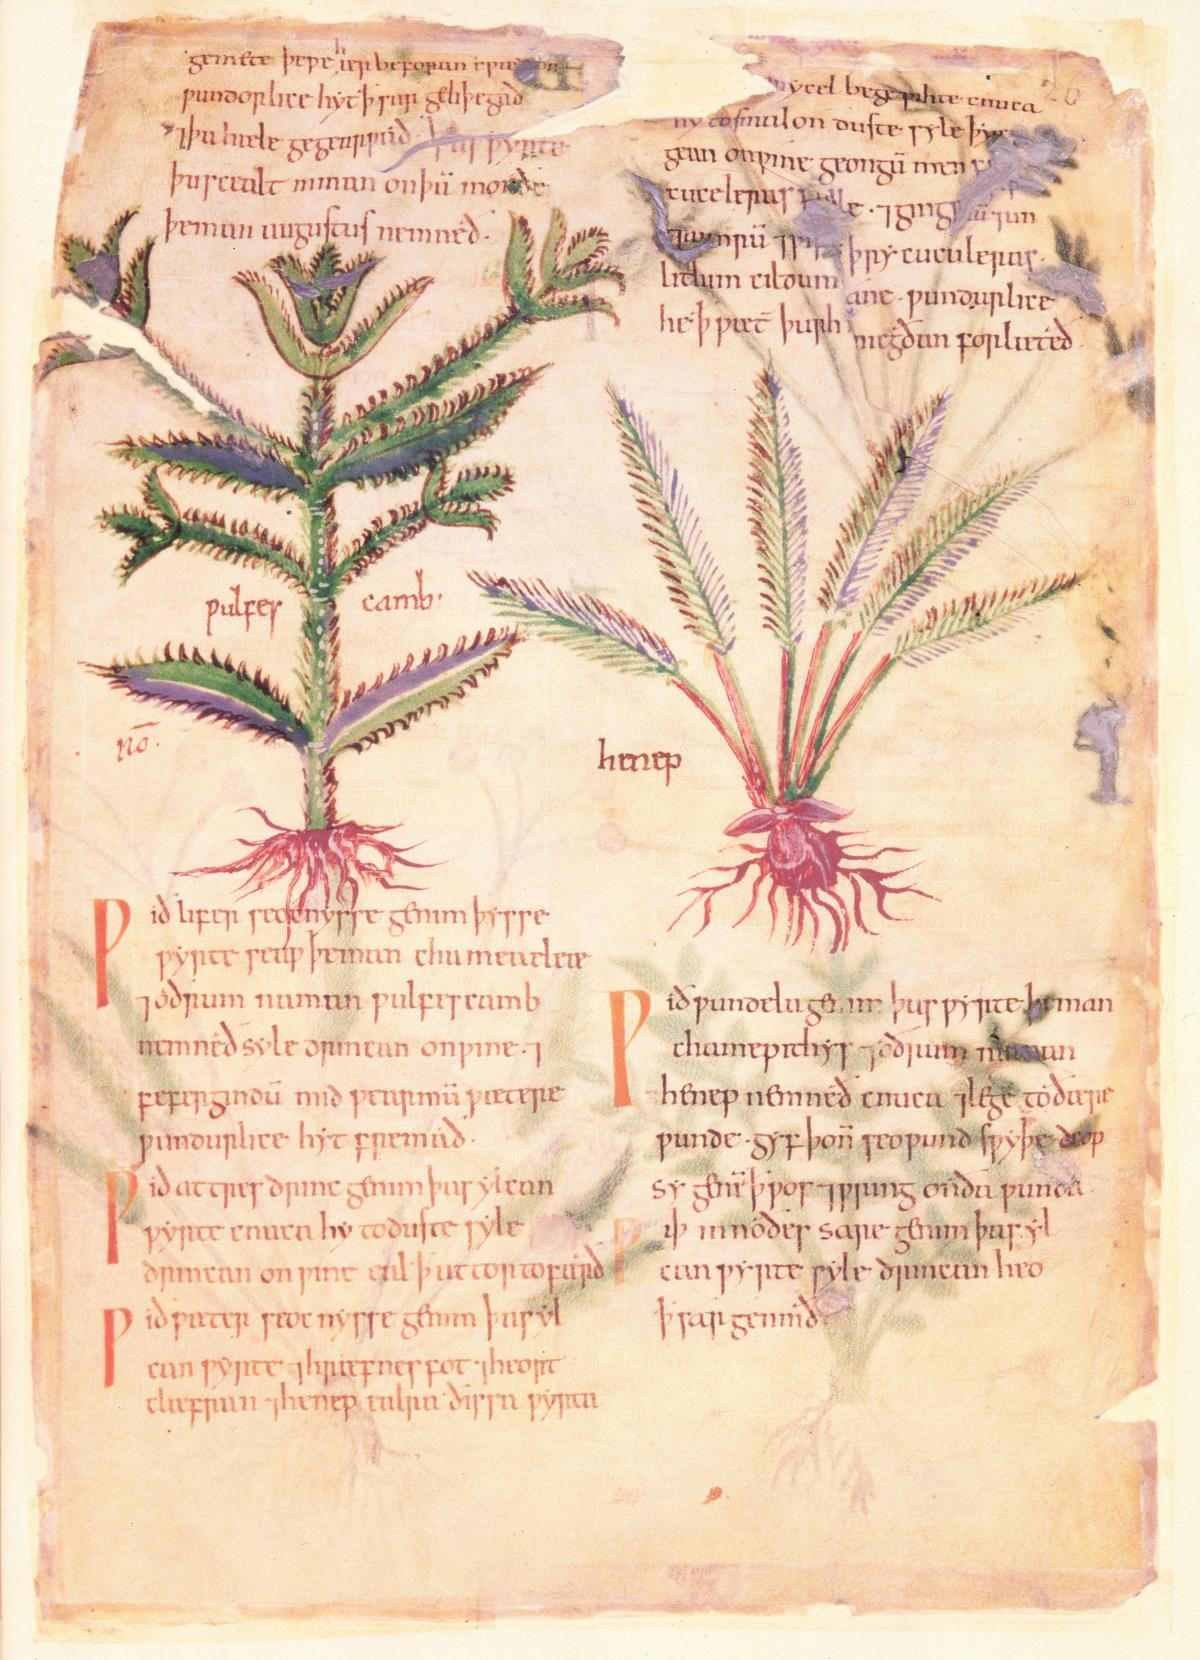 Delicate color drawings of two herbs, captioned with text in red ink